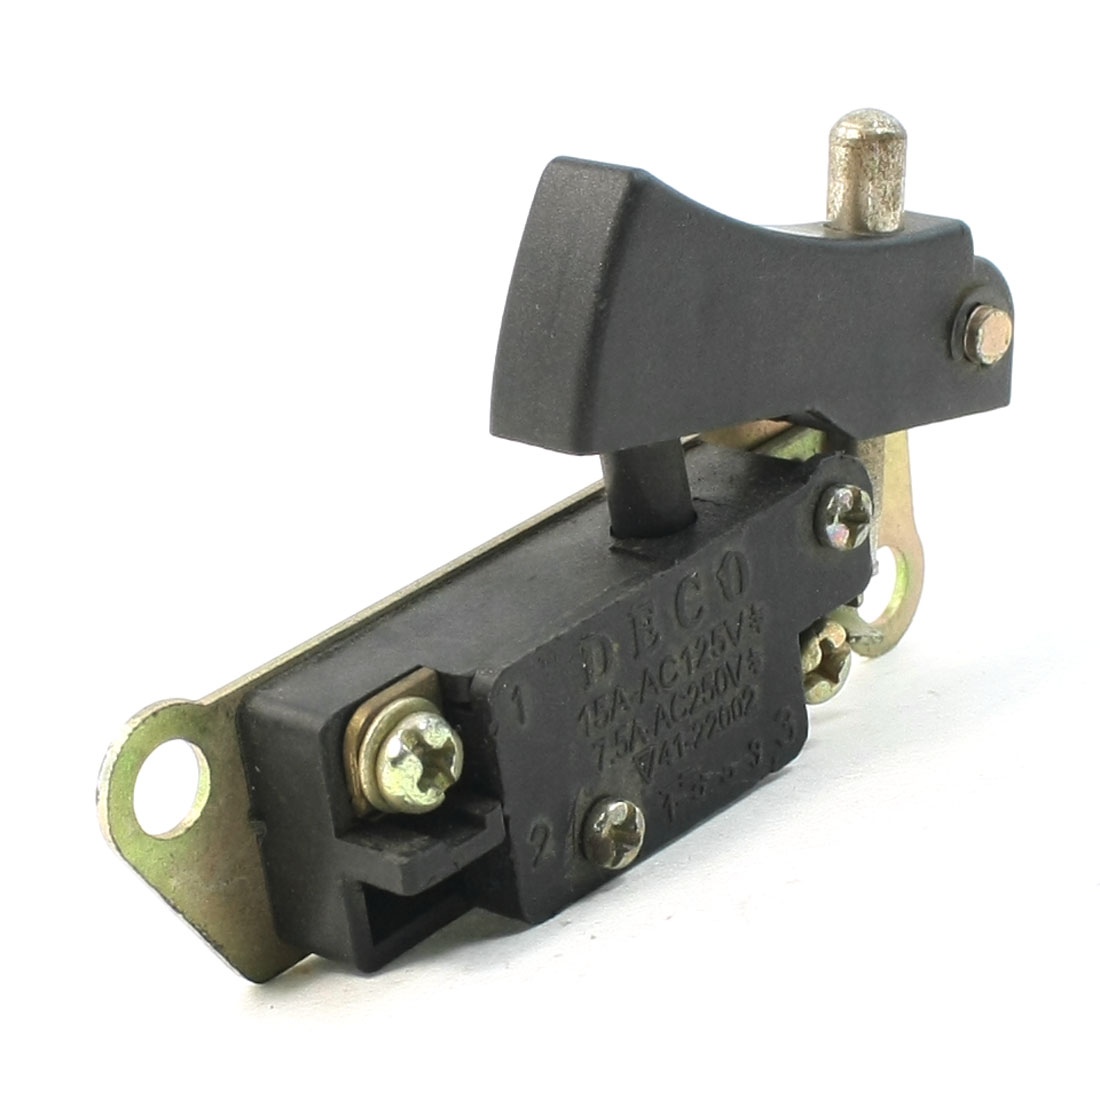 Angle Grinder Manual Lock Trigger Switch AC125V/15A AC250V/7.5A for LG 180